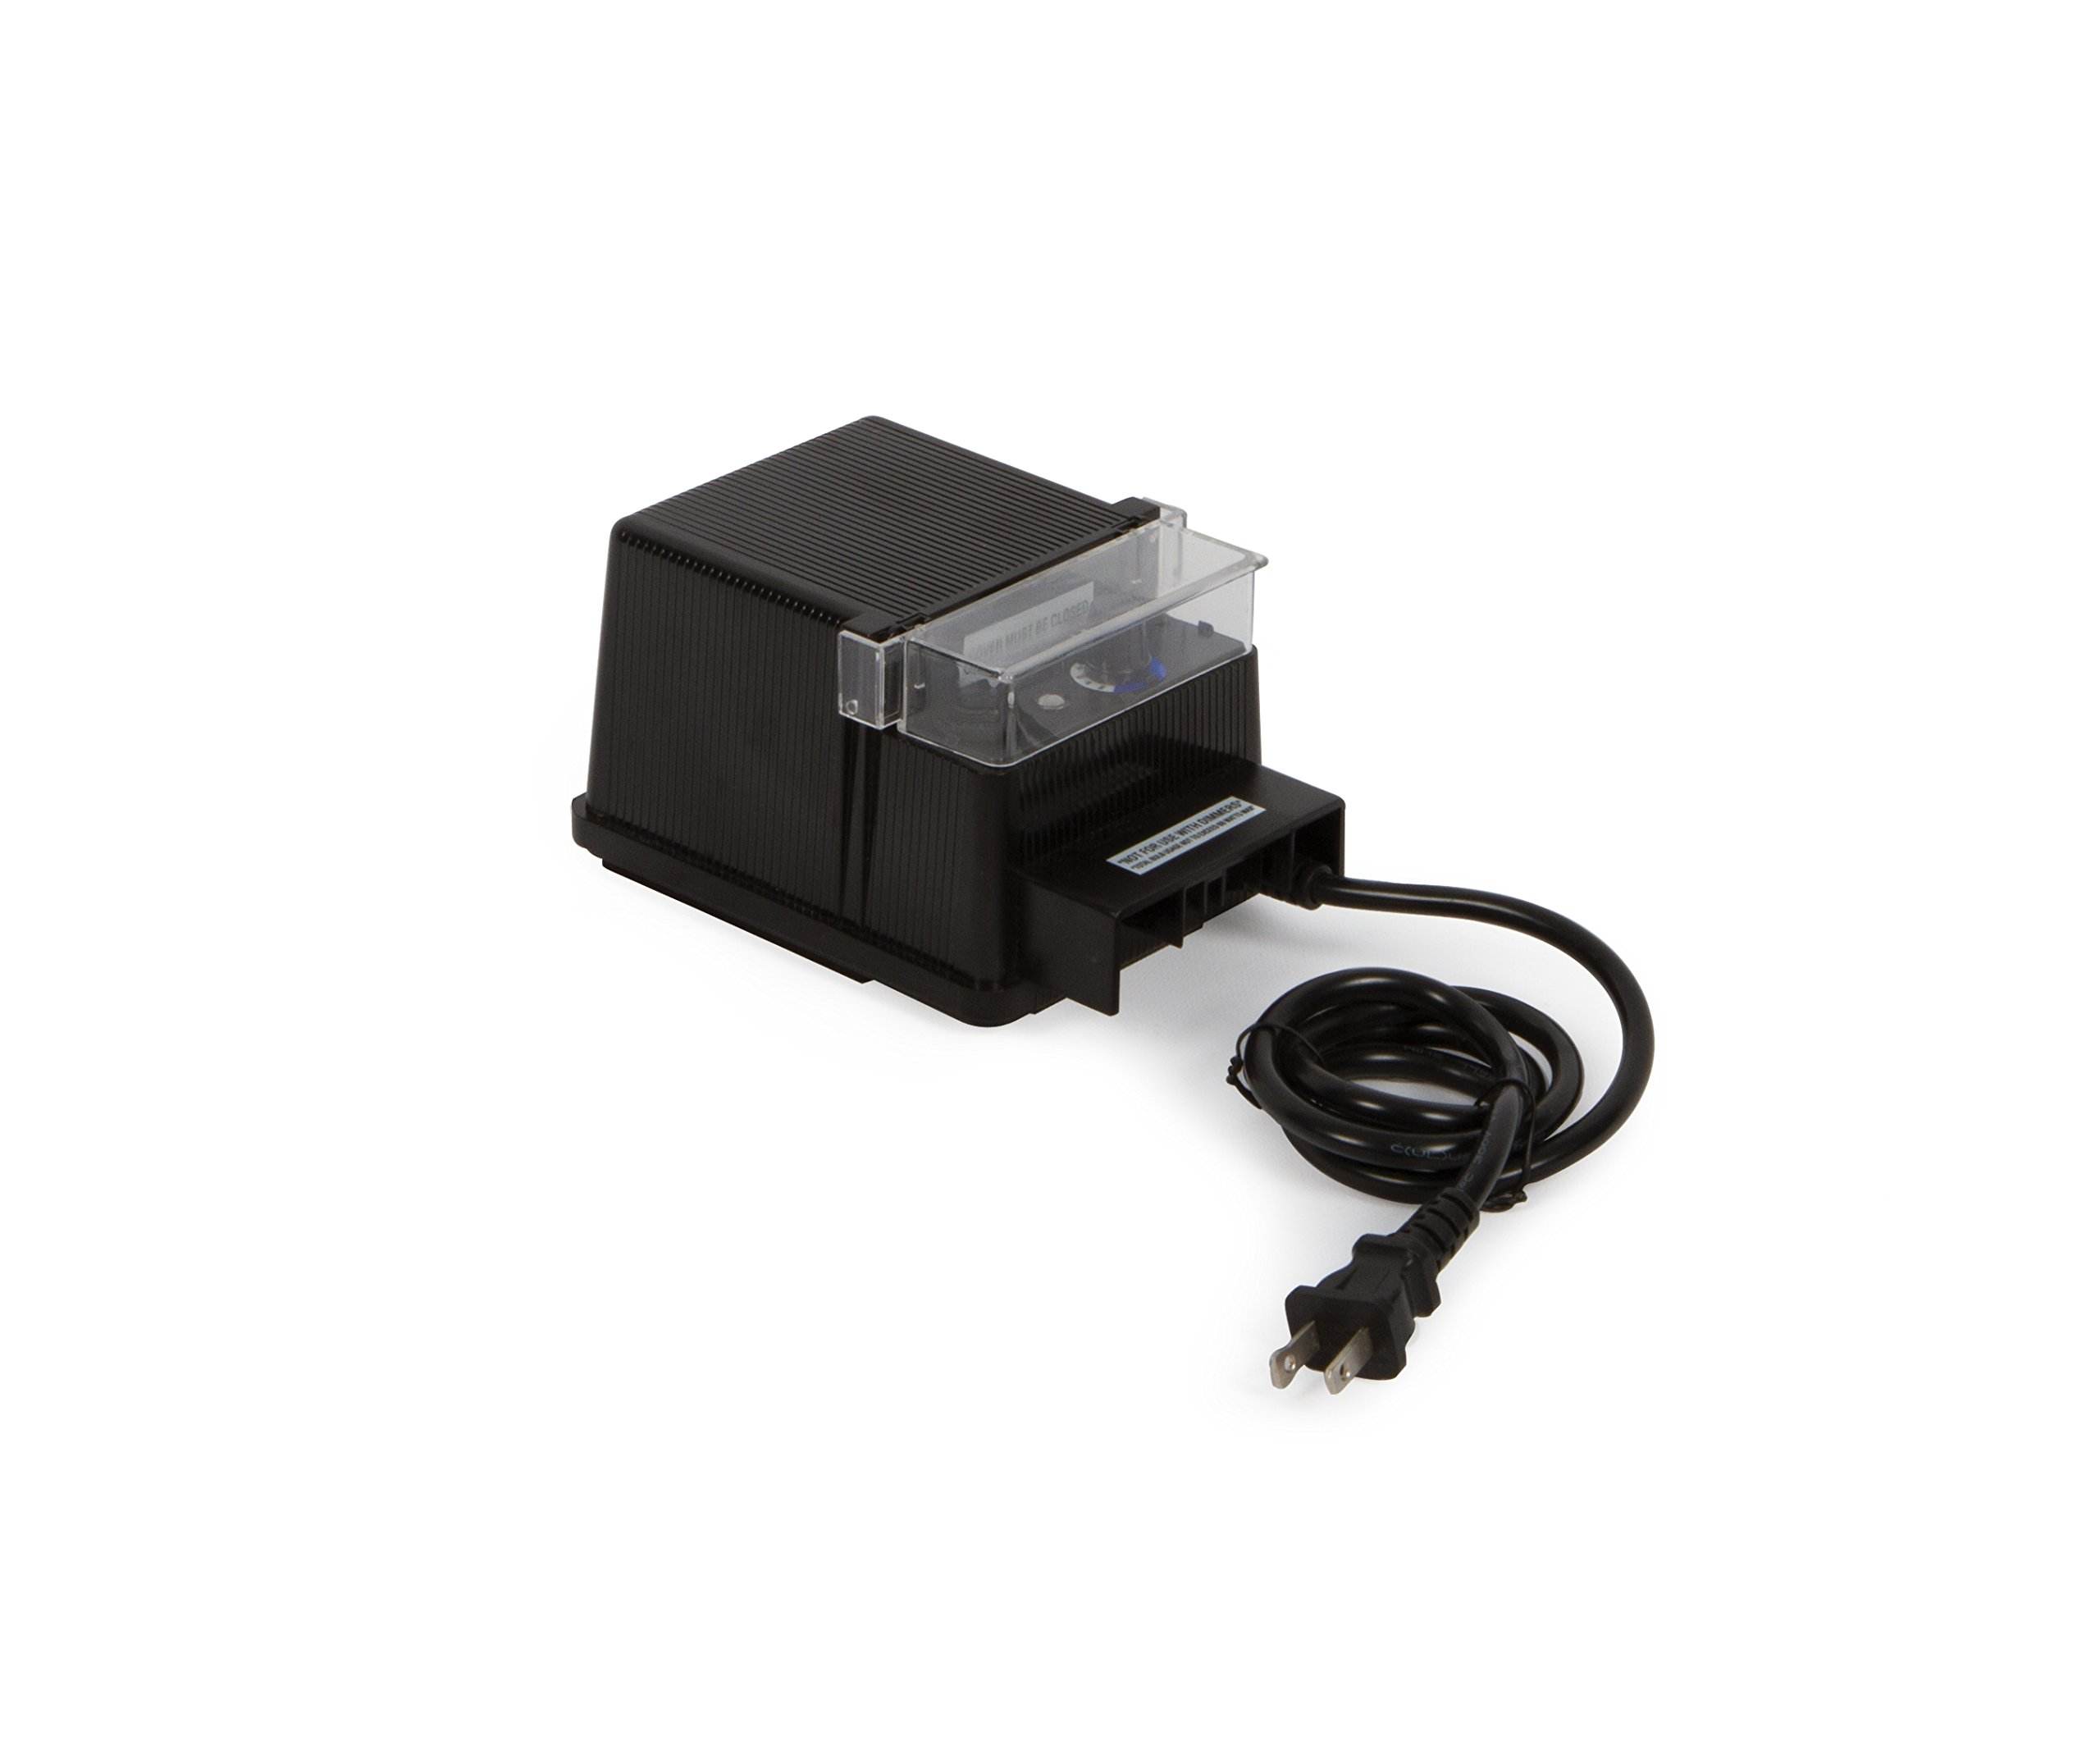 Atlantic Water Gardens Transformer, 88-watt for LED Lighting